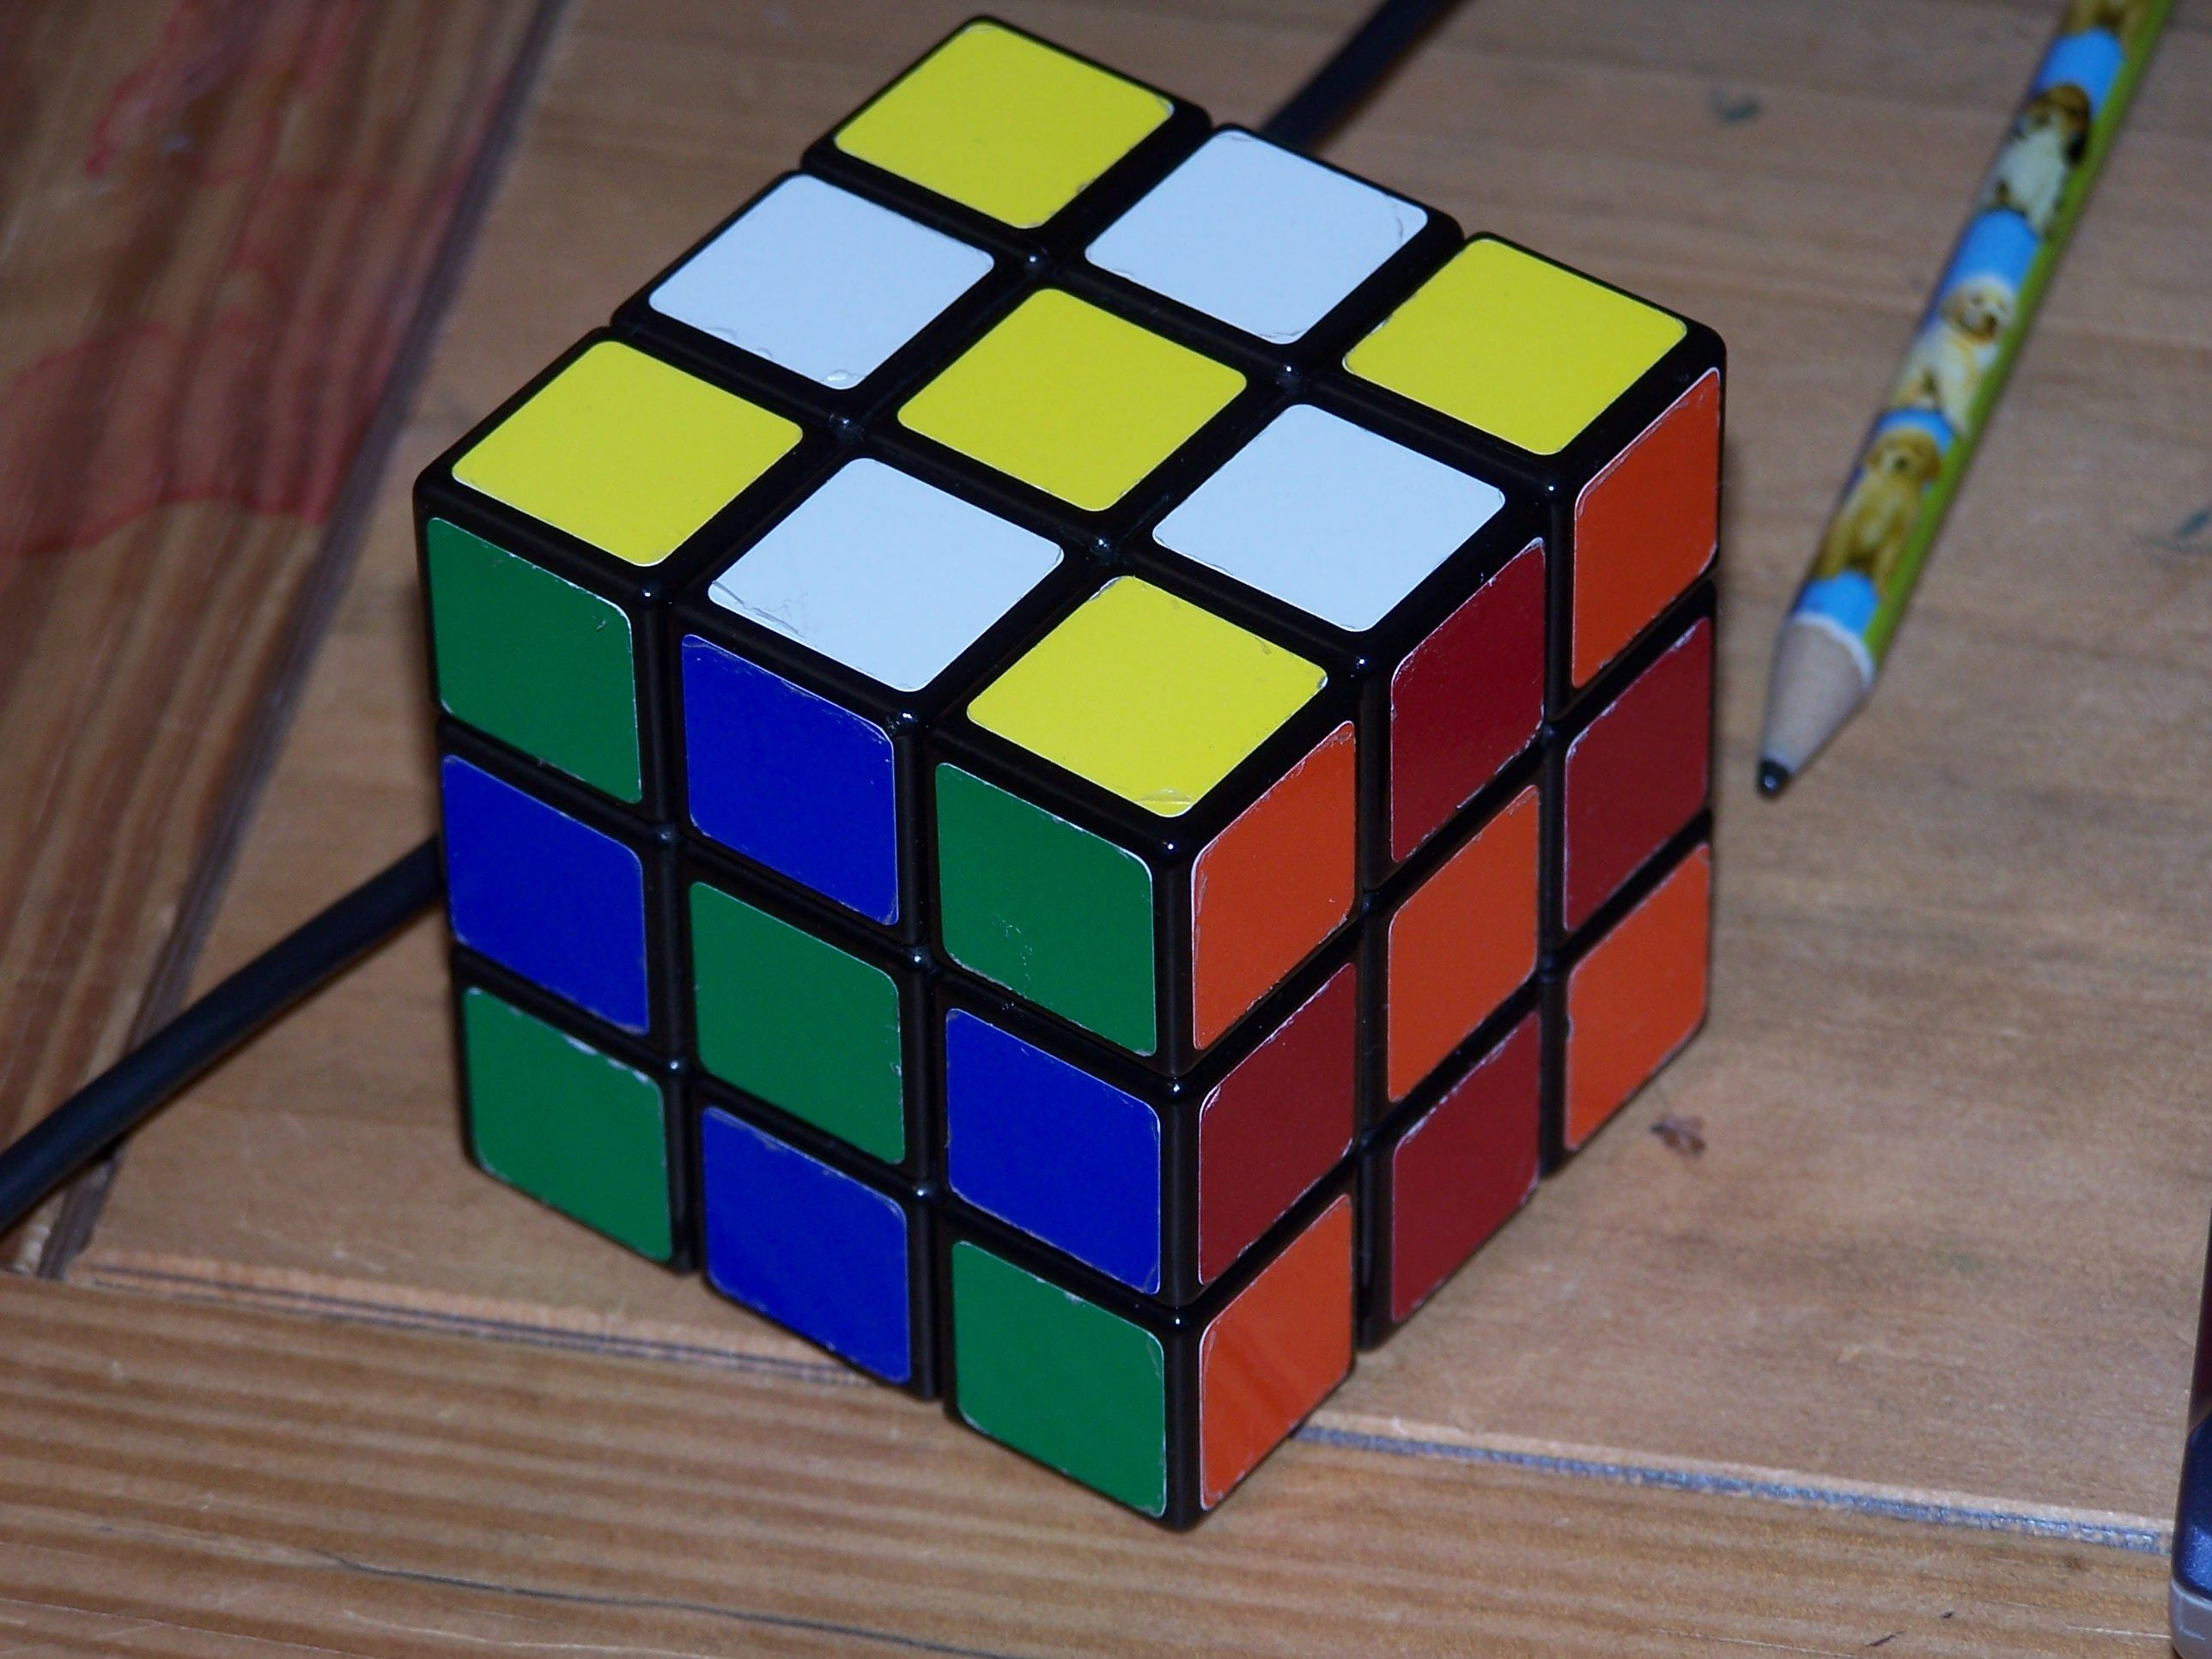 I Am Going To Show You The Simplest Way Solve A Rubiks Cube For Beginners